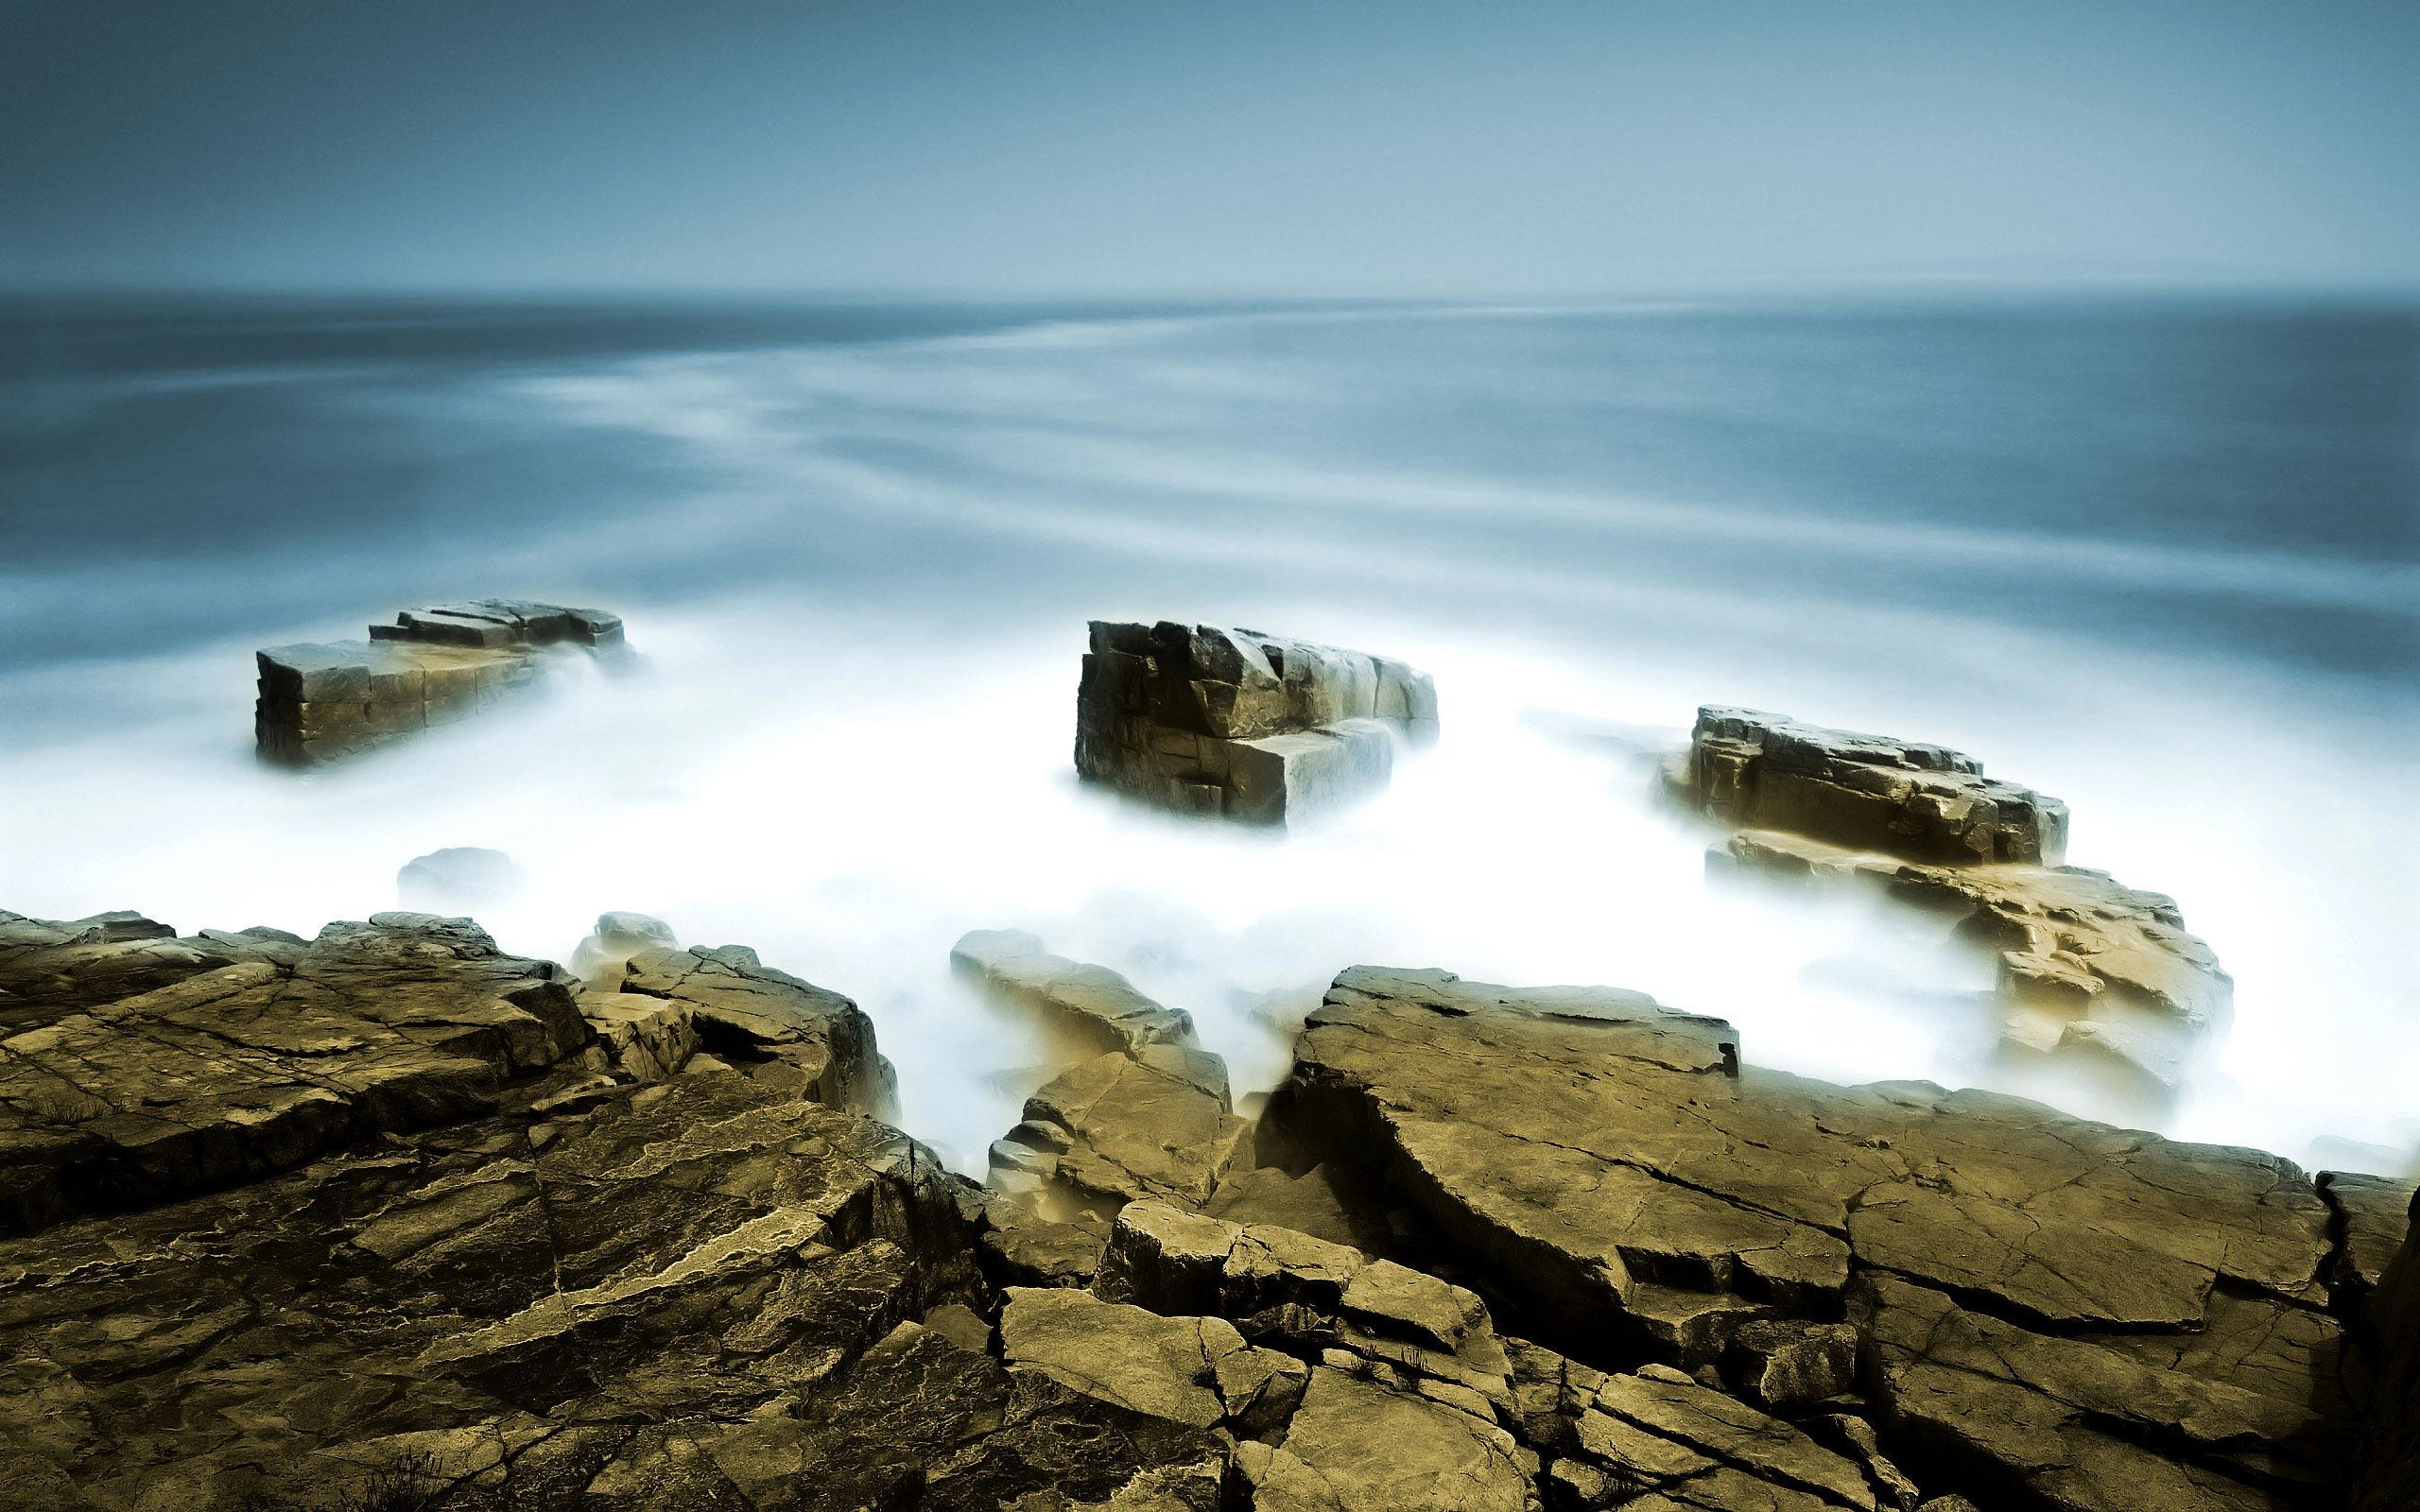 Sea mist wallpapers | Sea mist stock photos